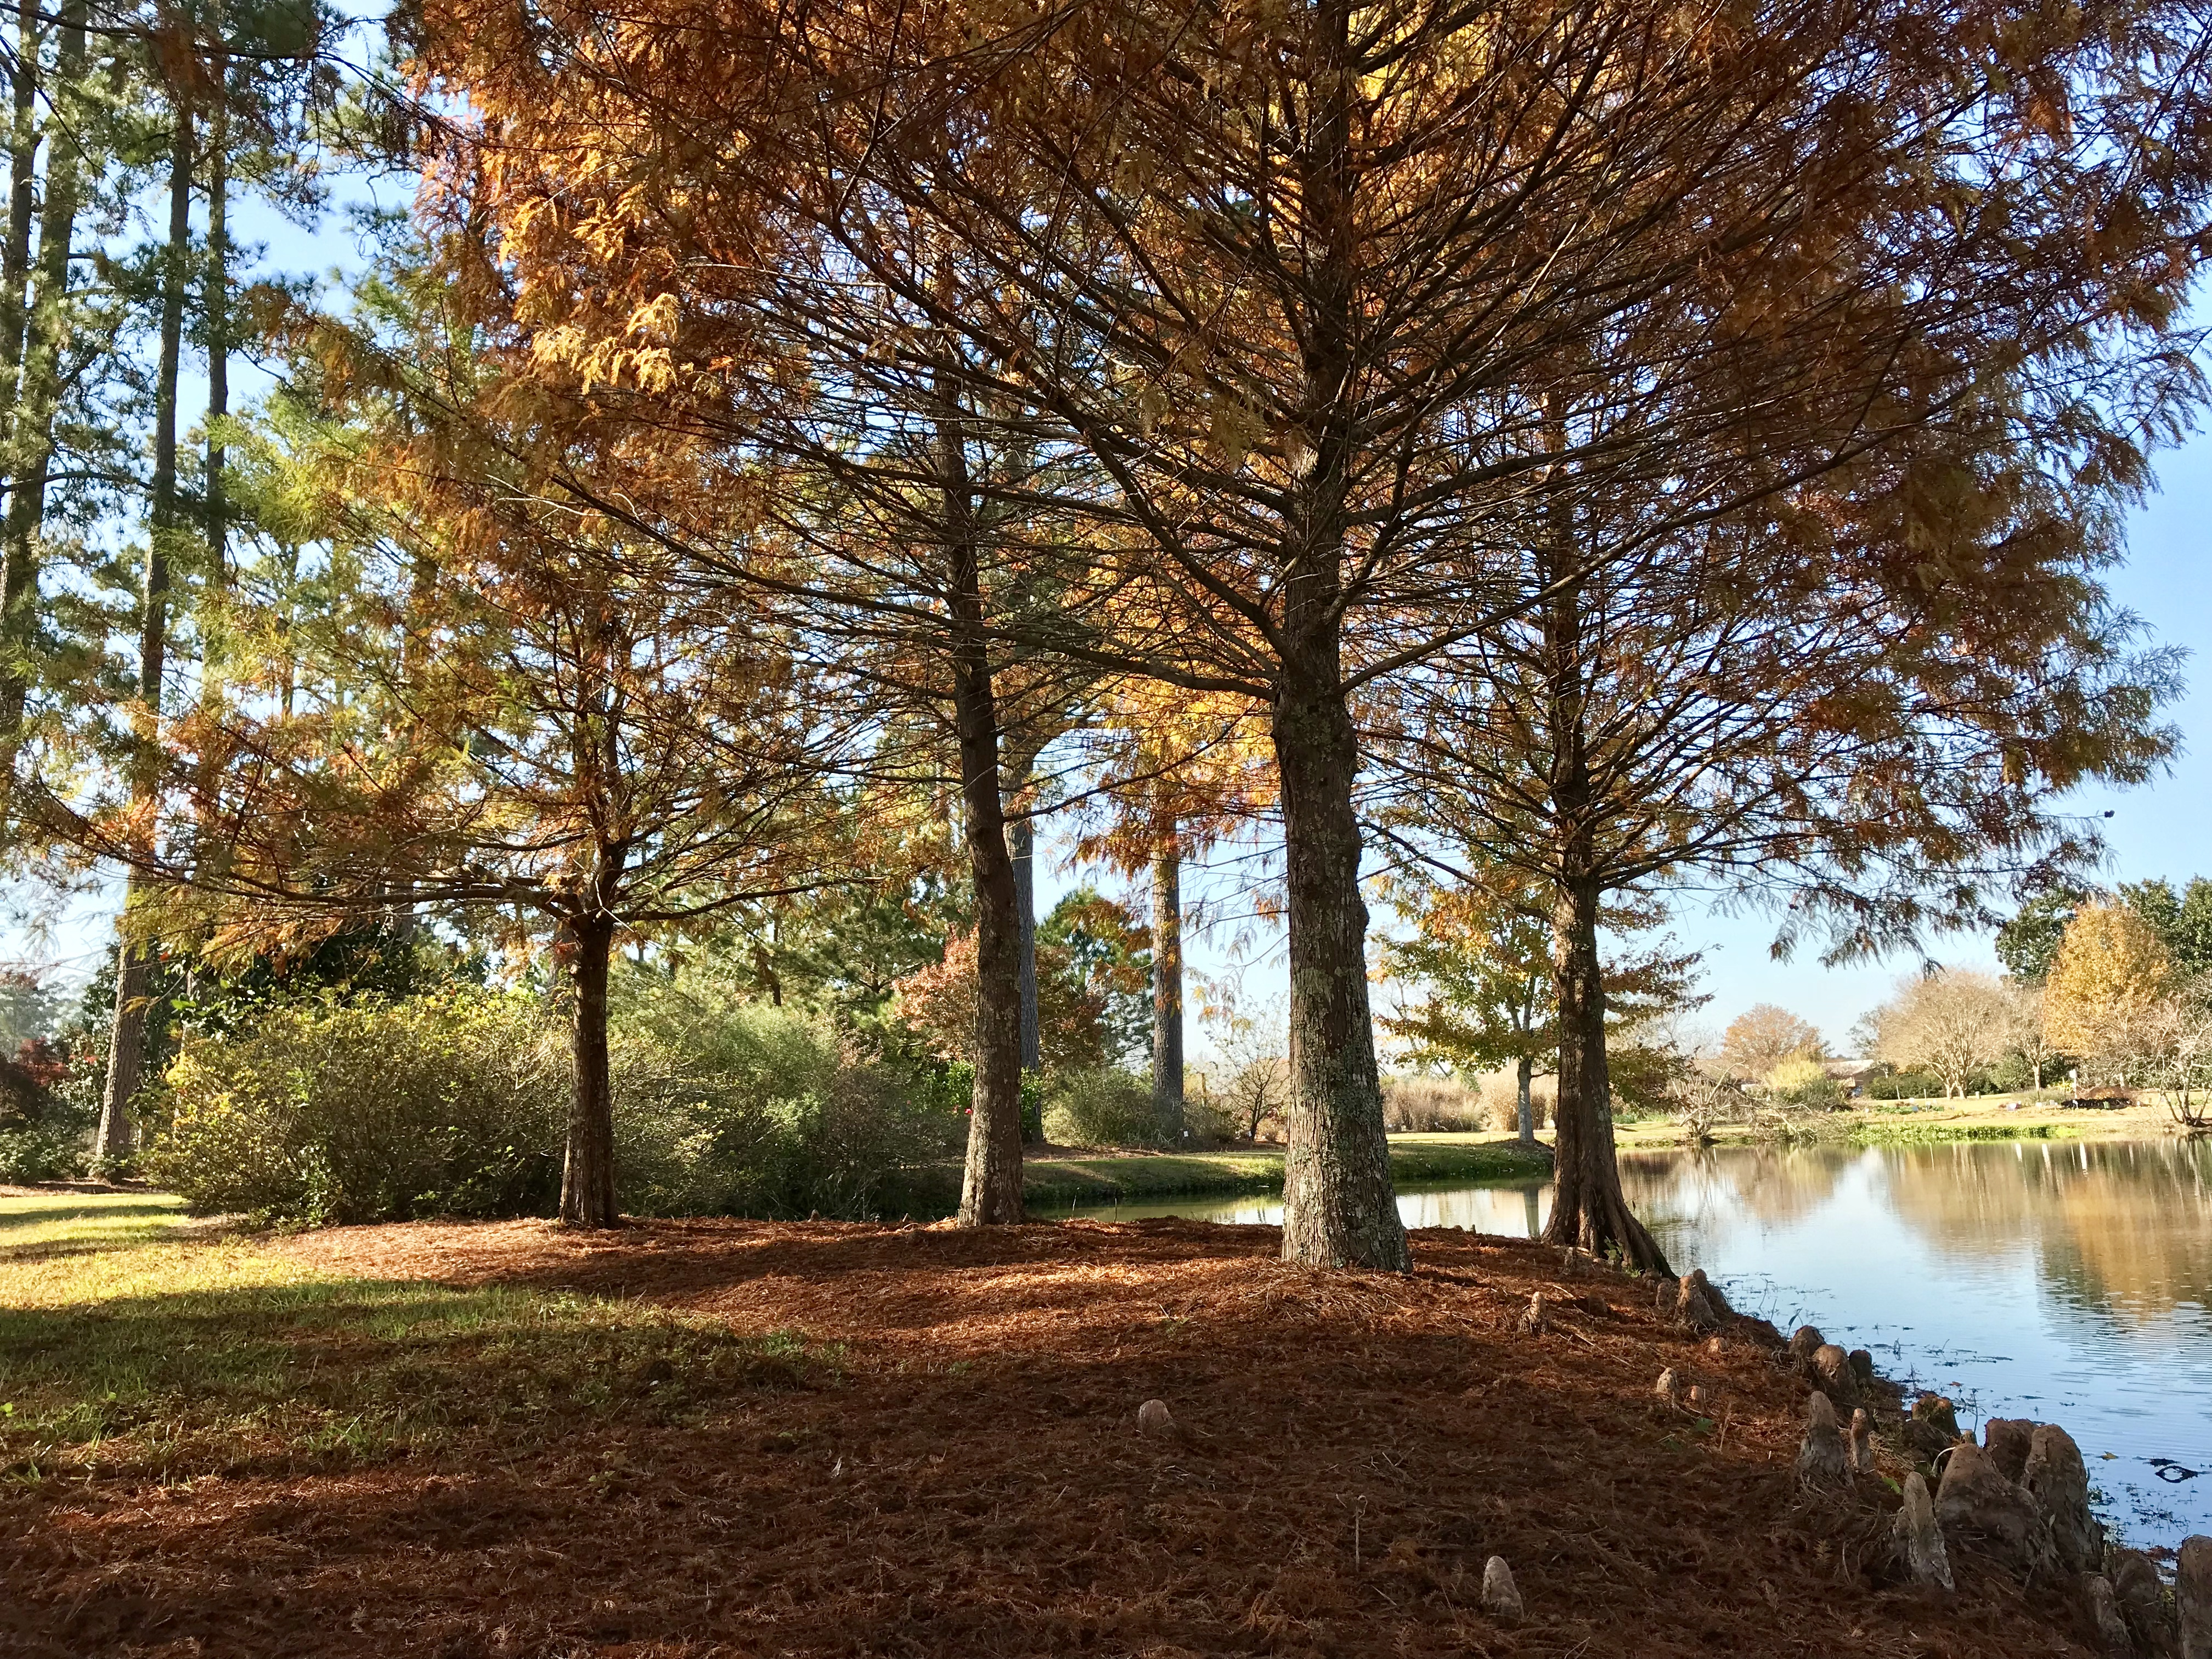 Bald cypress drop their leaves in fall creating a natural mulch.